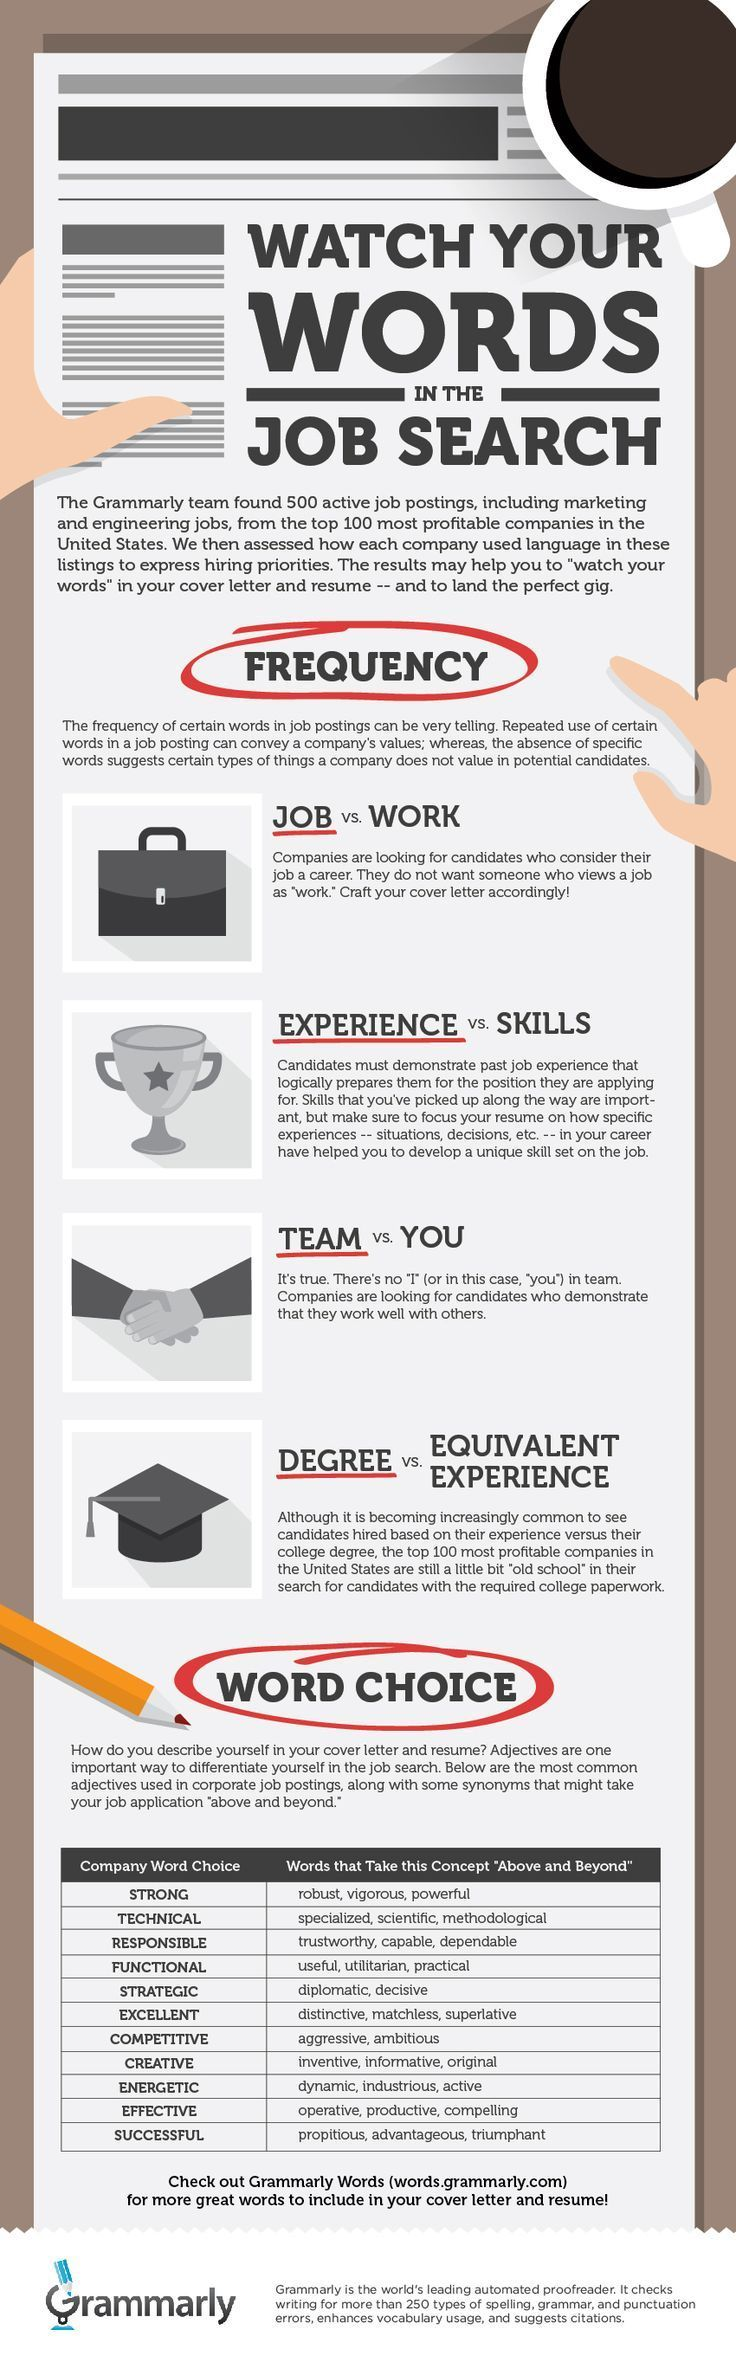 Cute 1 2 3 Nu Kapitel Resume Thick 1.5 Button Template Regular 10 Tips For Writing A Good Resume 100 Chart Template Youthful 1096 Template Black1099 Template 10 Best Images About Resume Templates On Pinterest | Entry Level ..